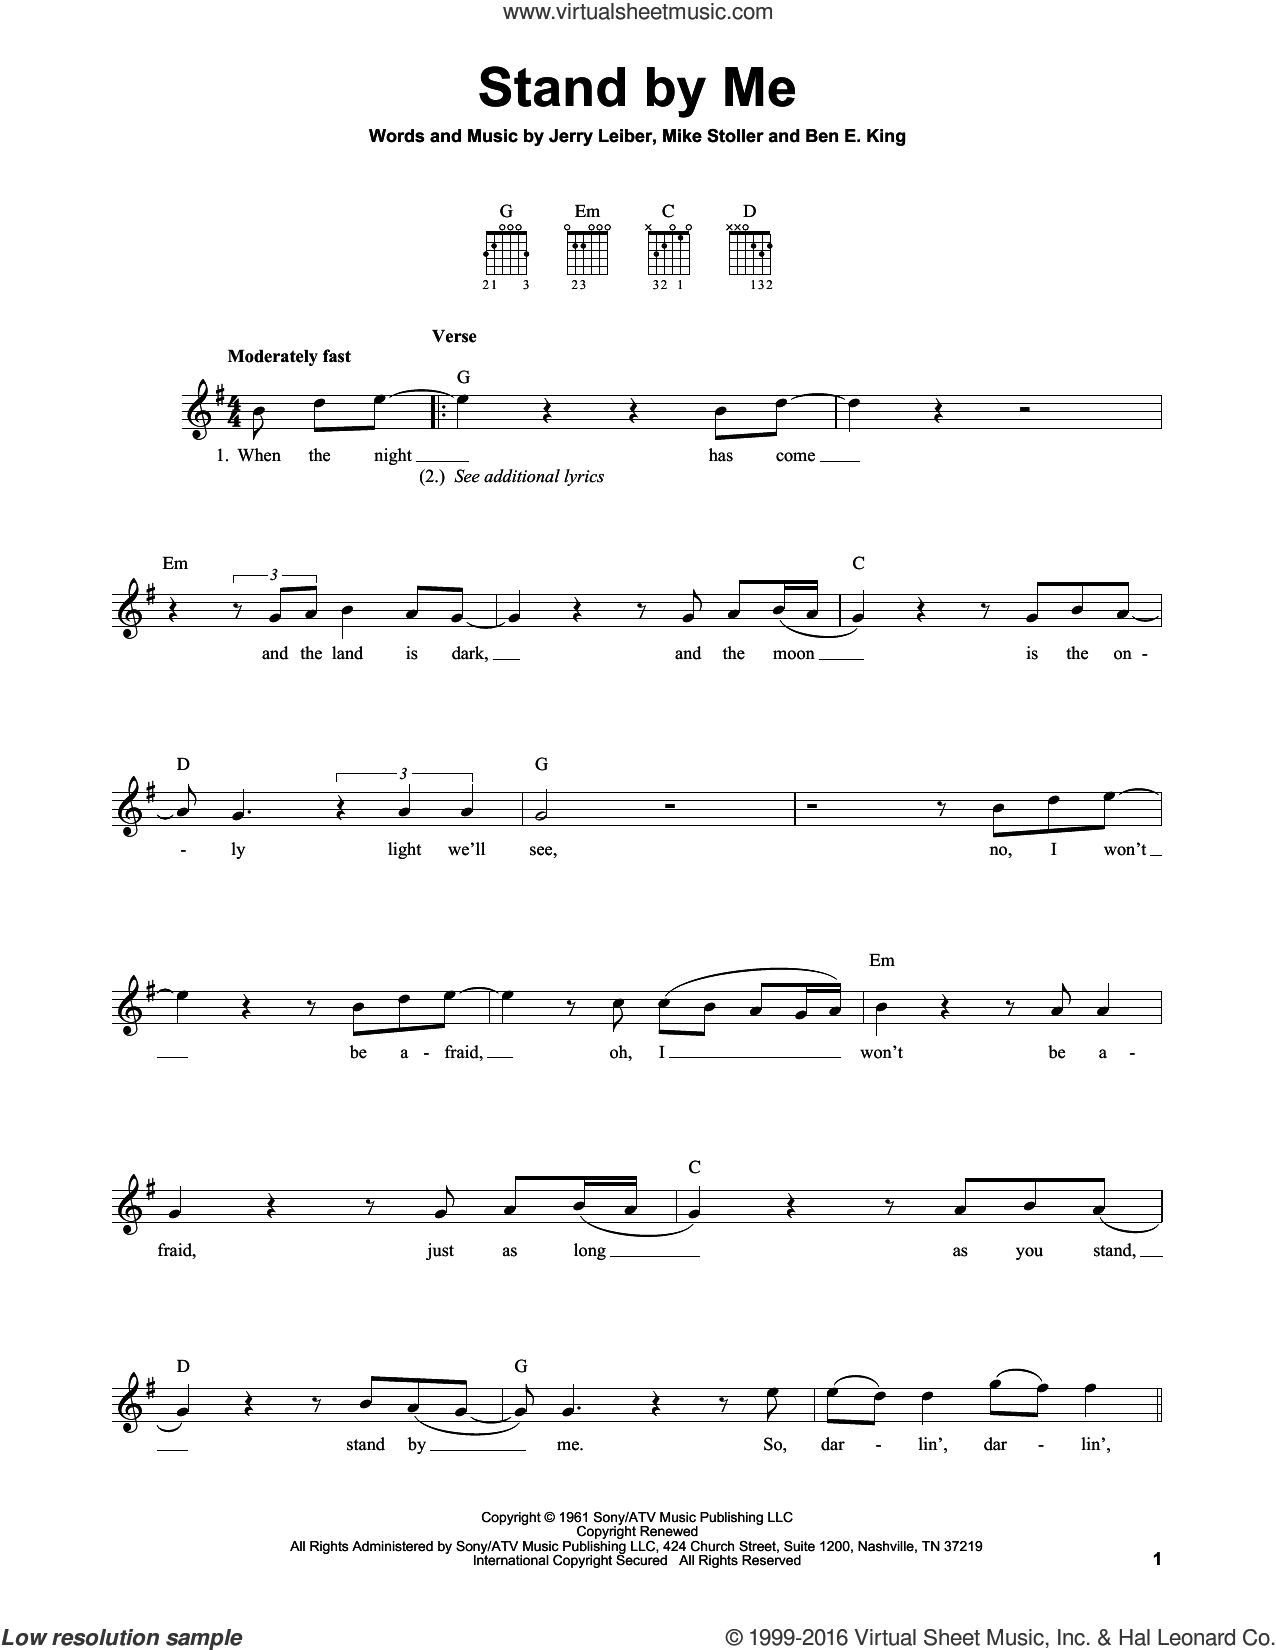 Stand By Me sheet music for guitar solo (chords) by Ben E. King, Mickey Gilley and Mike Stoller. Score Image Preview.